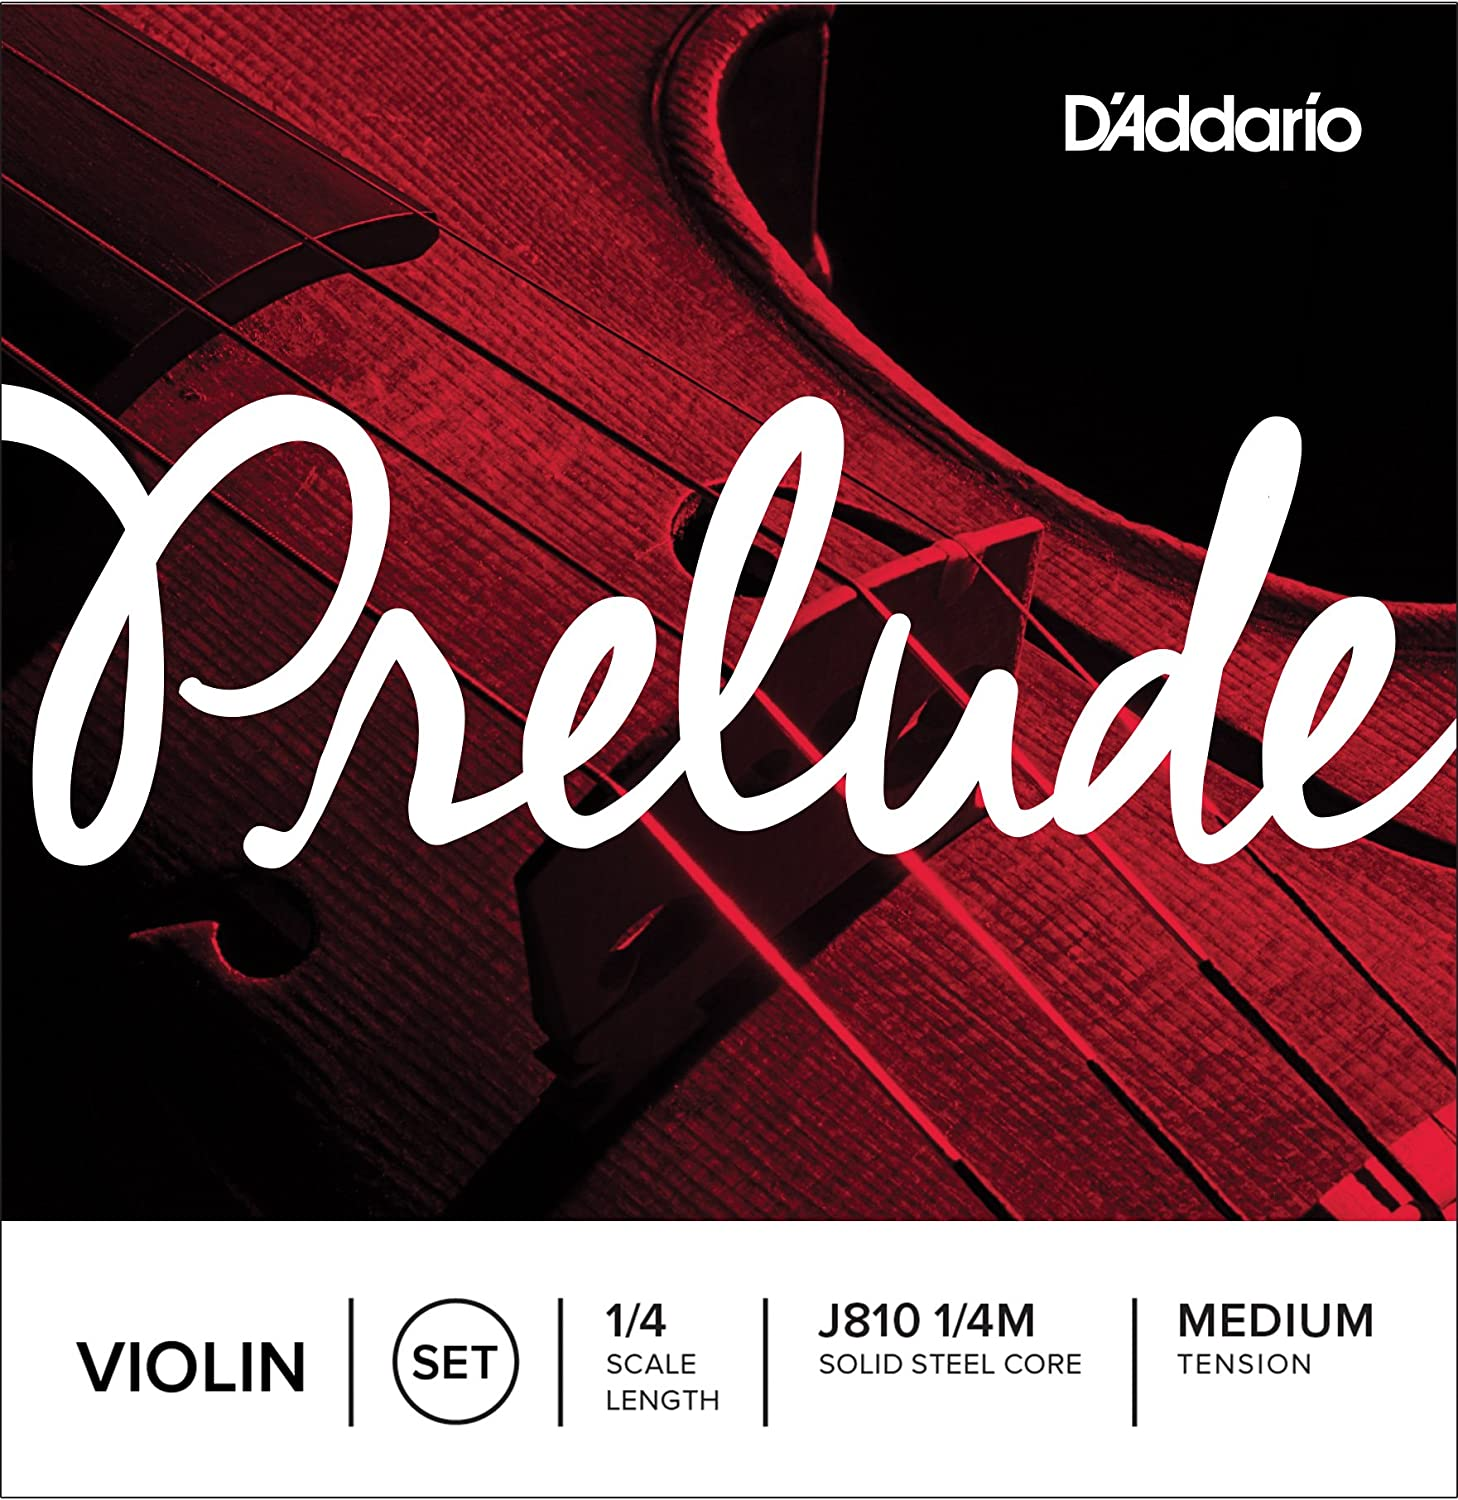 B0002D08IE D'Addario Prelude Violin String Set, 1/4 Scale, Medium Tension 81e7wo2yQGL